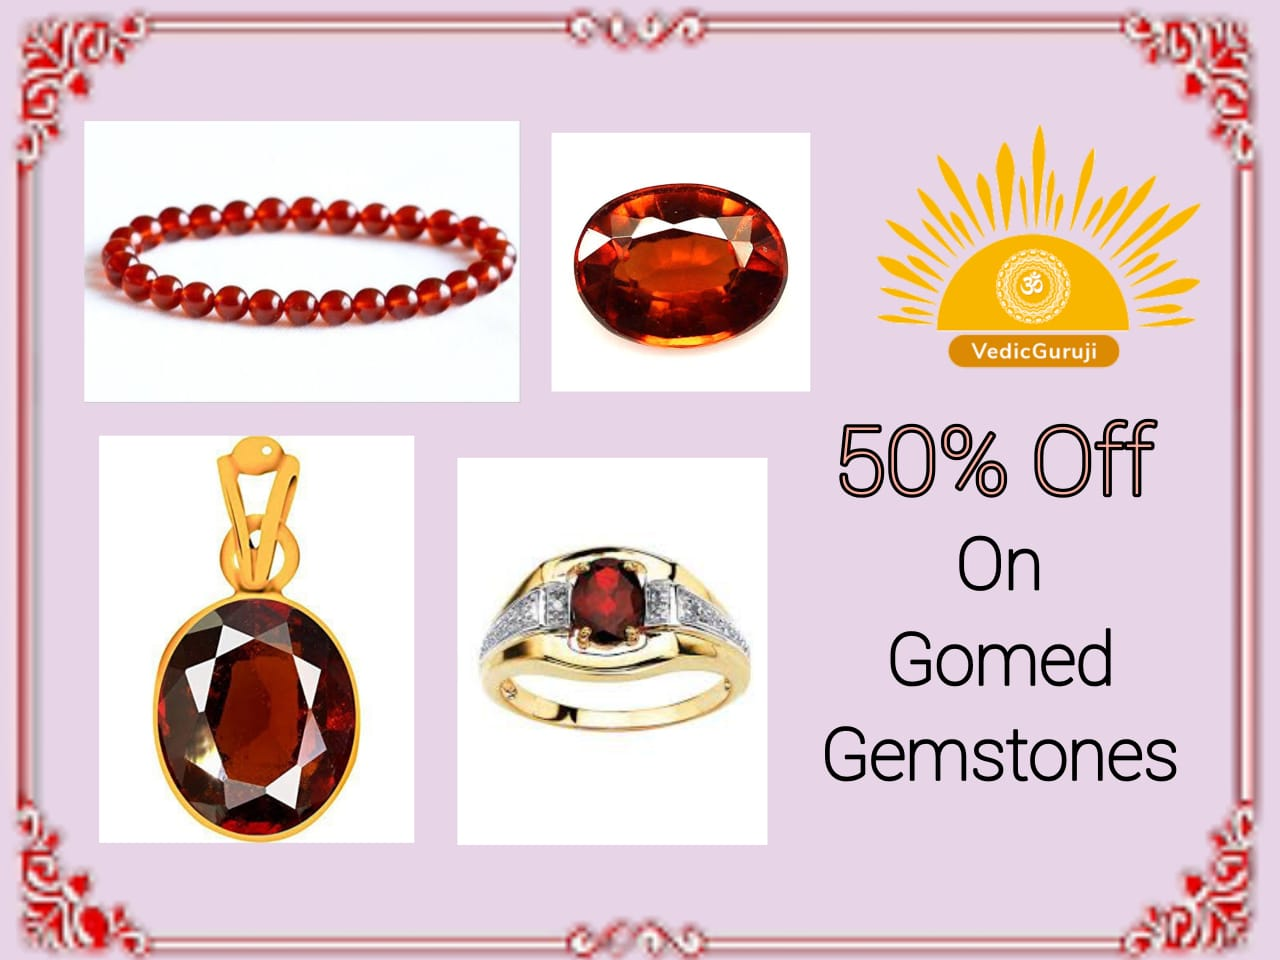 Gomed Hessonite Gemstone Benefits